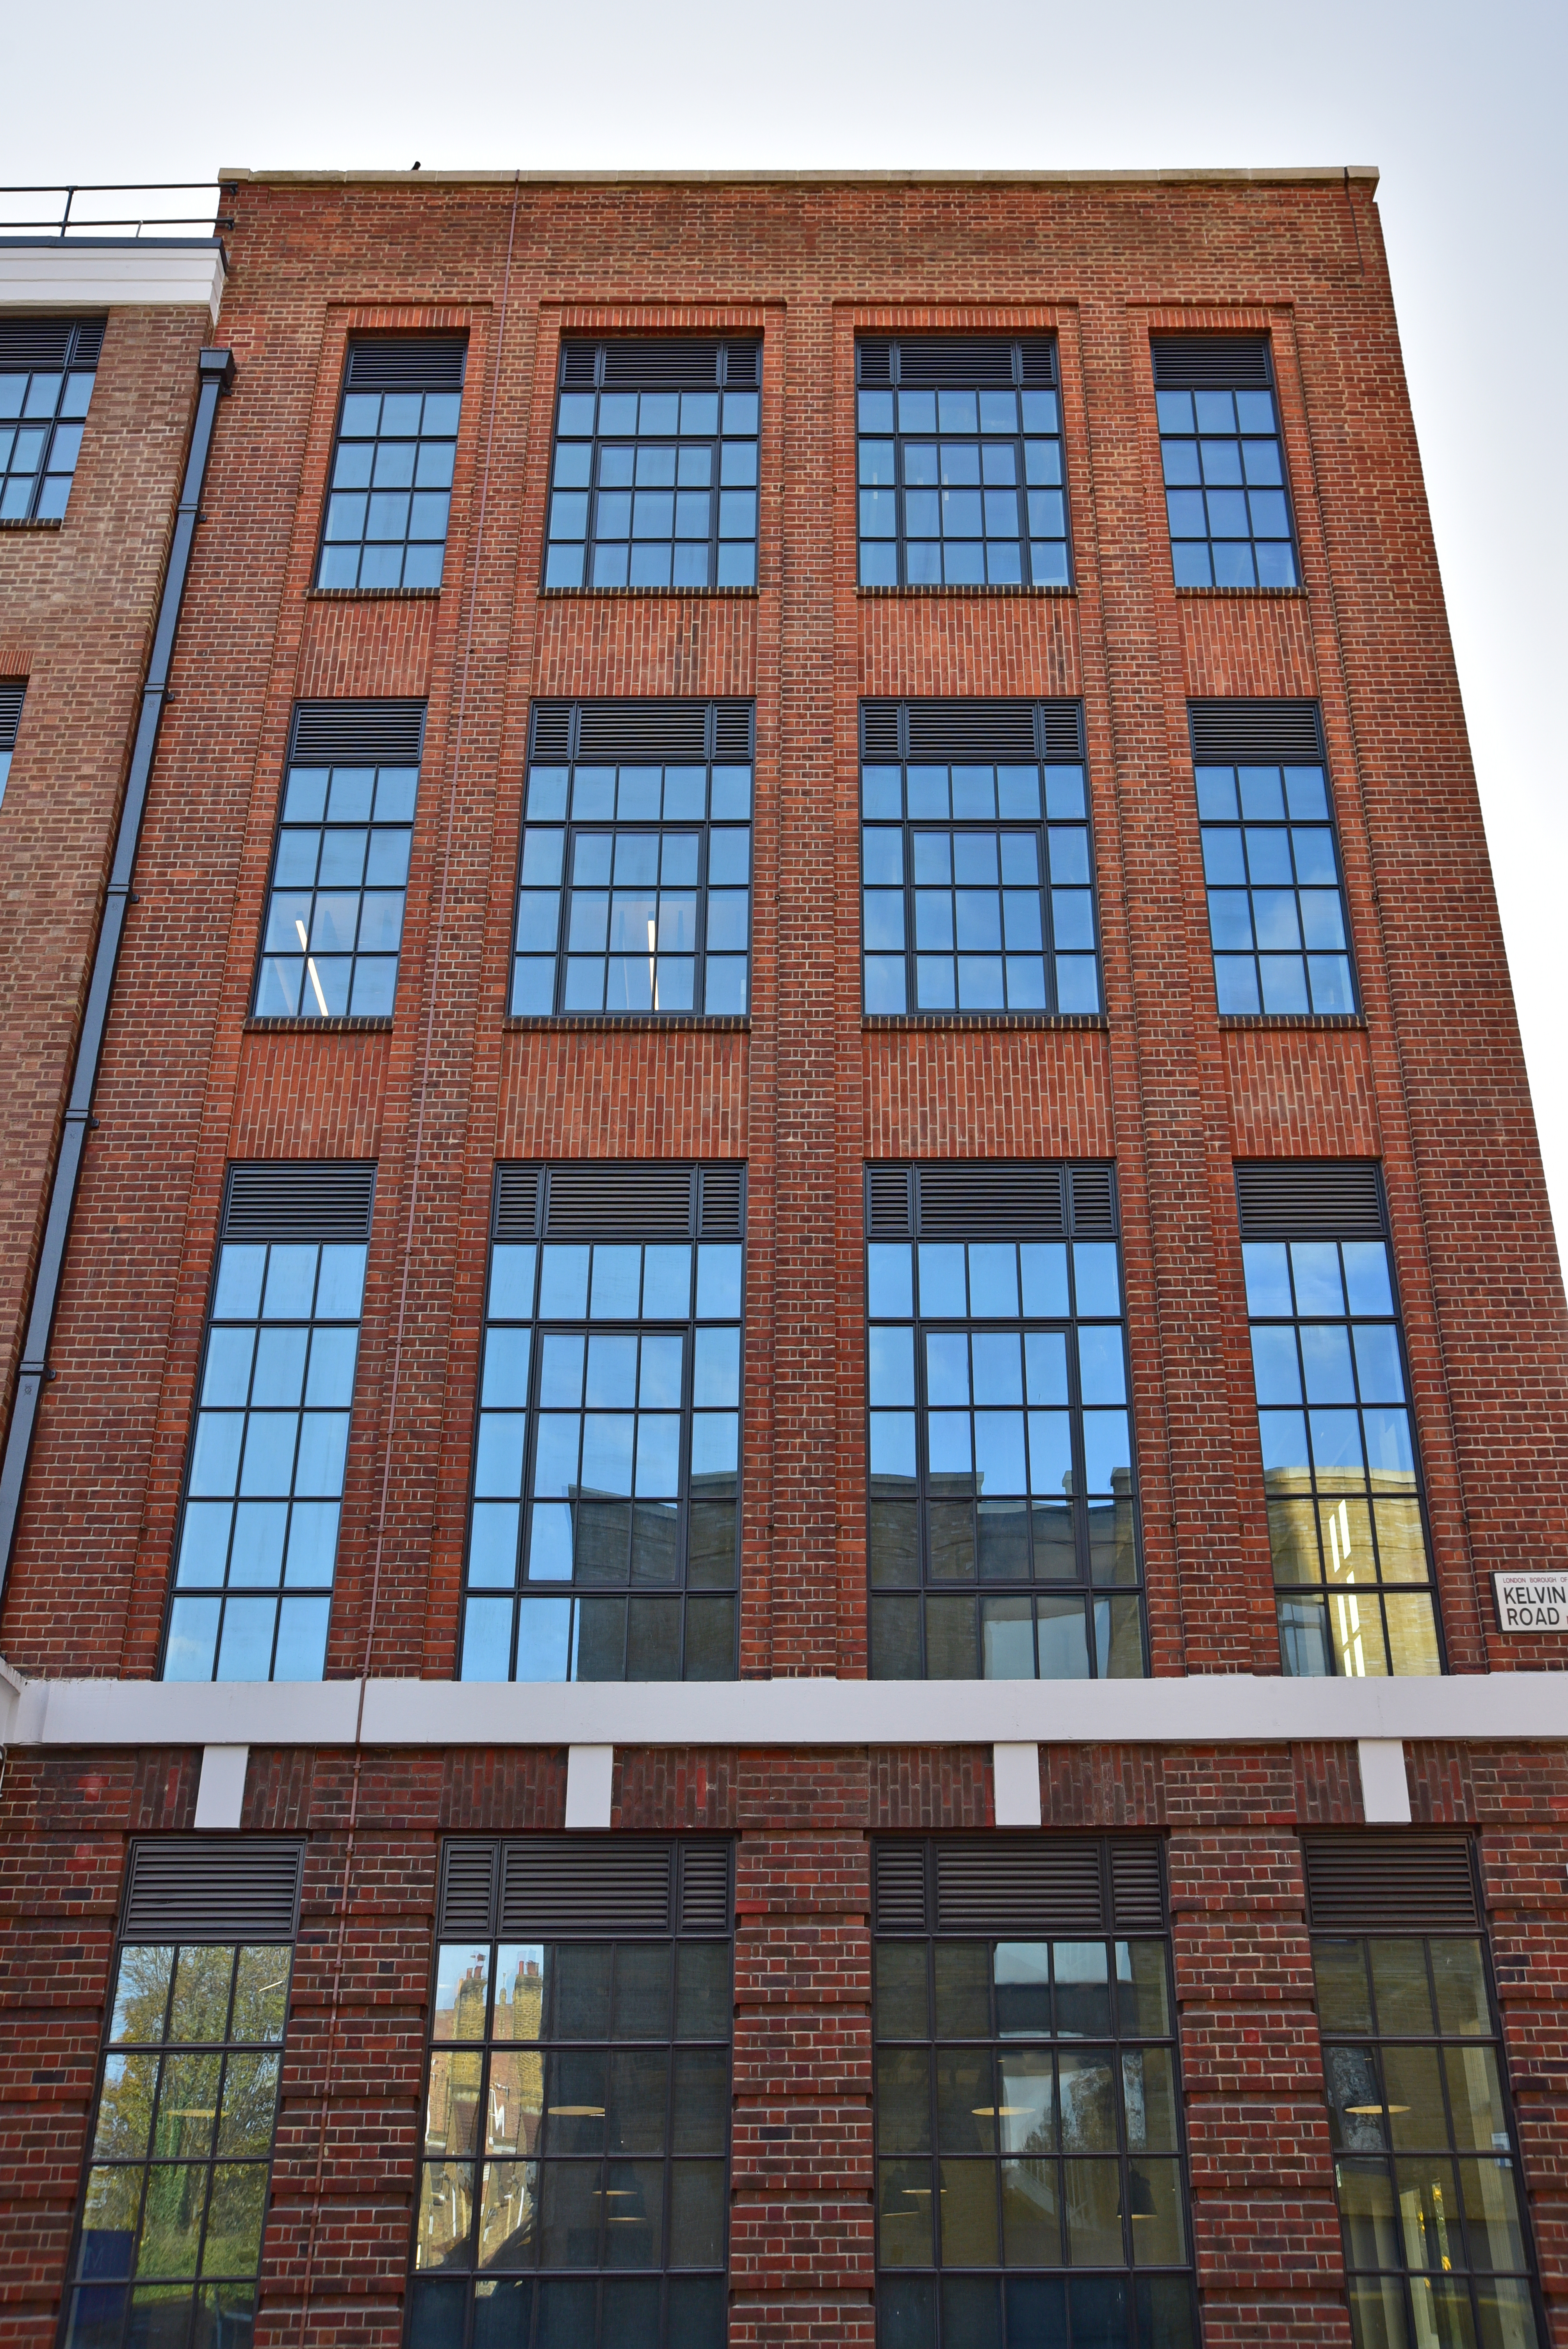 Facade, Building Envelope, Advanced Ventilation Systems, Front Elevation Construction Photography,